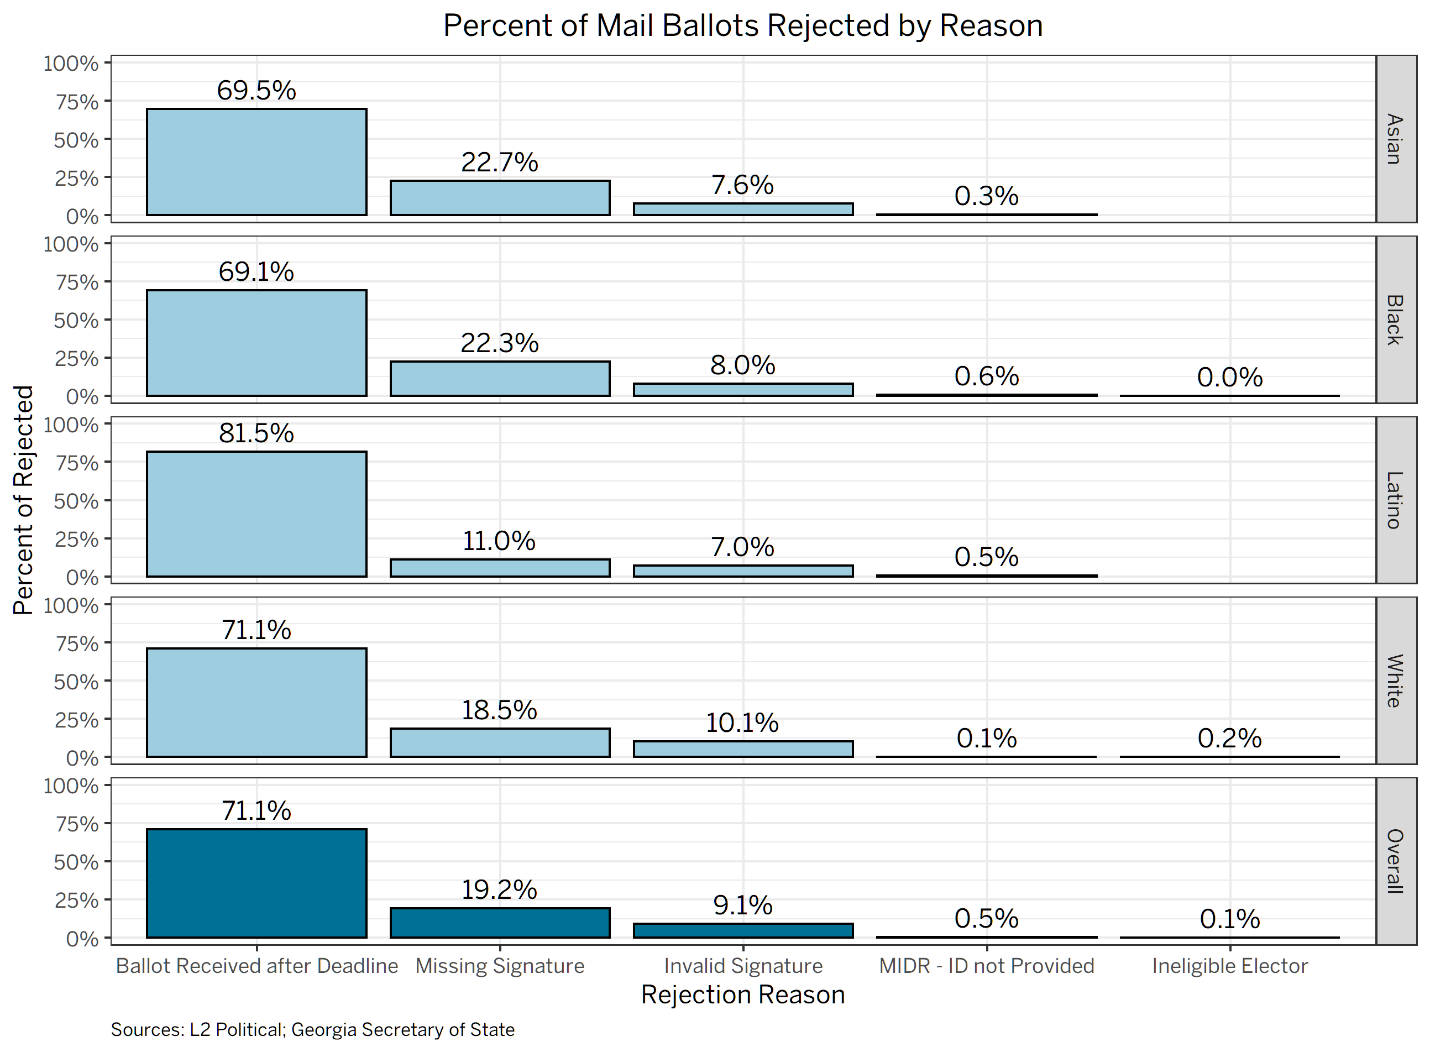 Percent of Mail Ballots Rejected by Reason